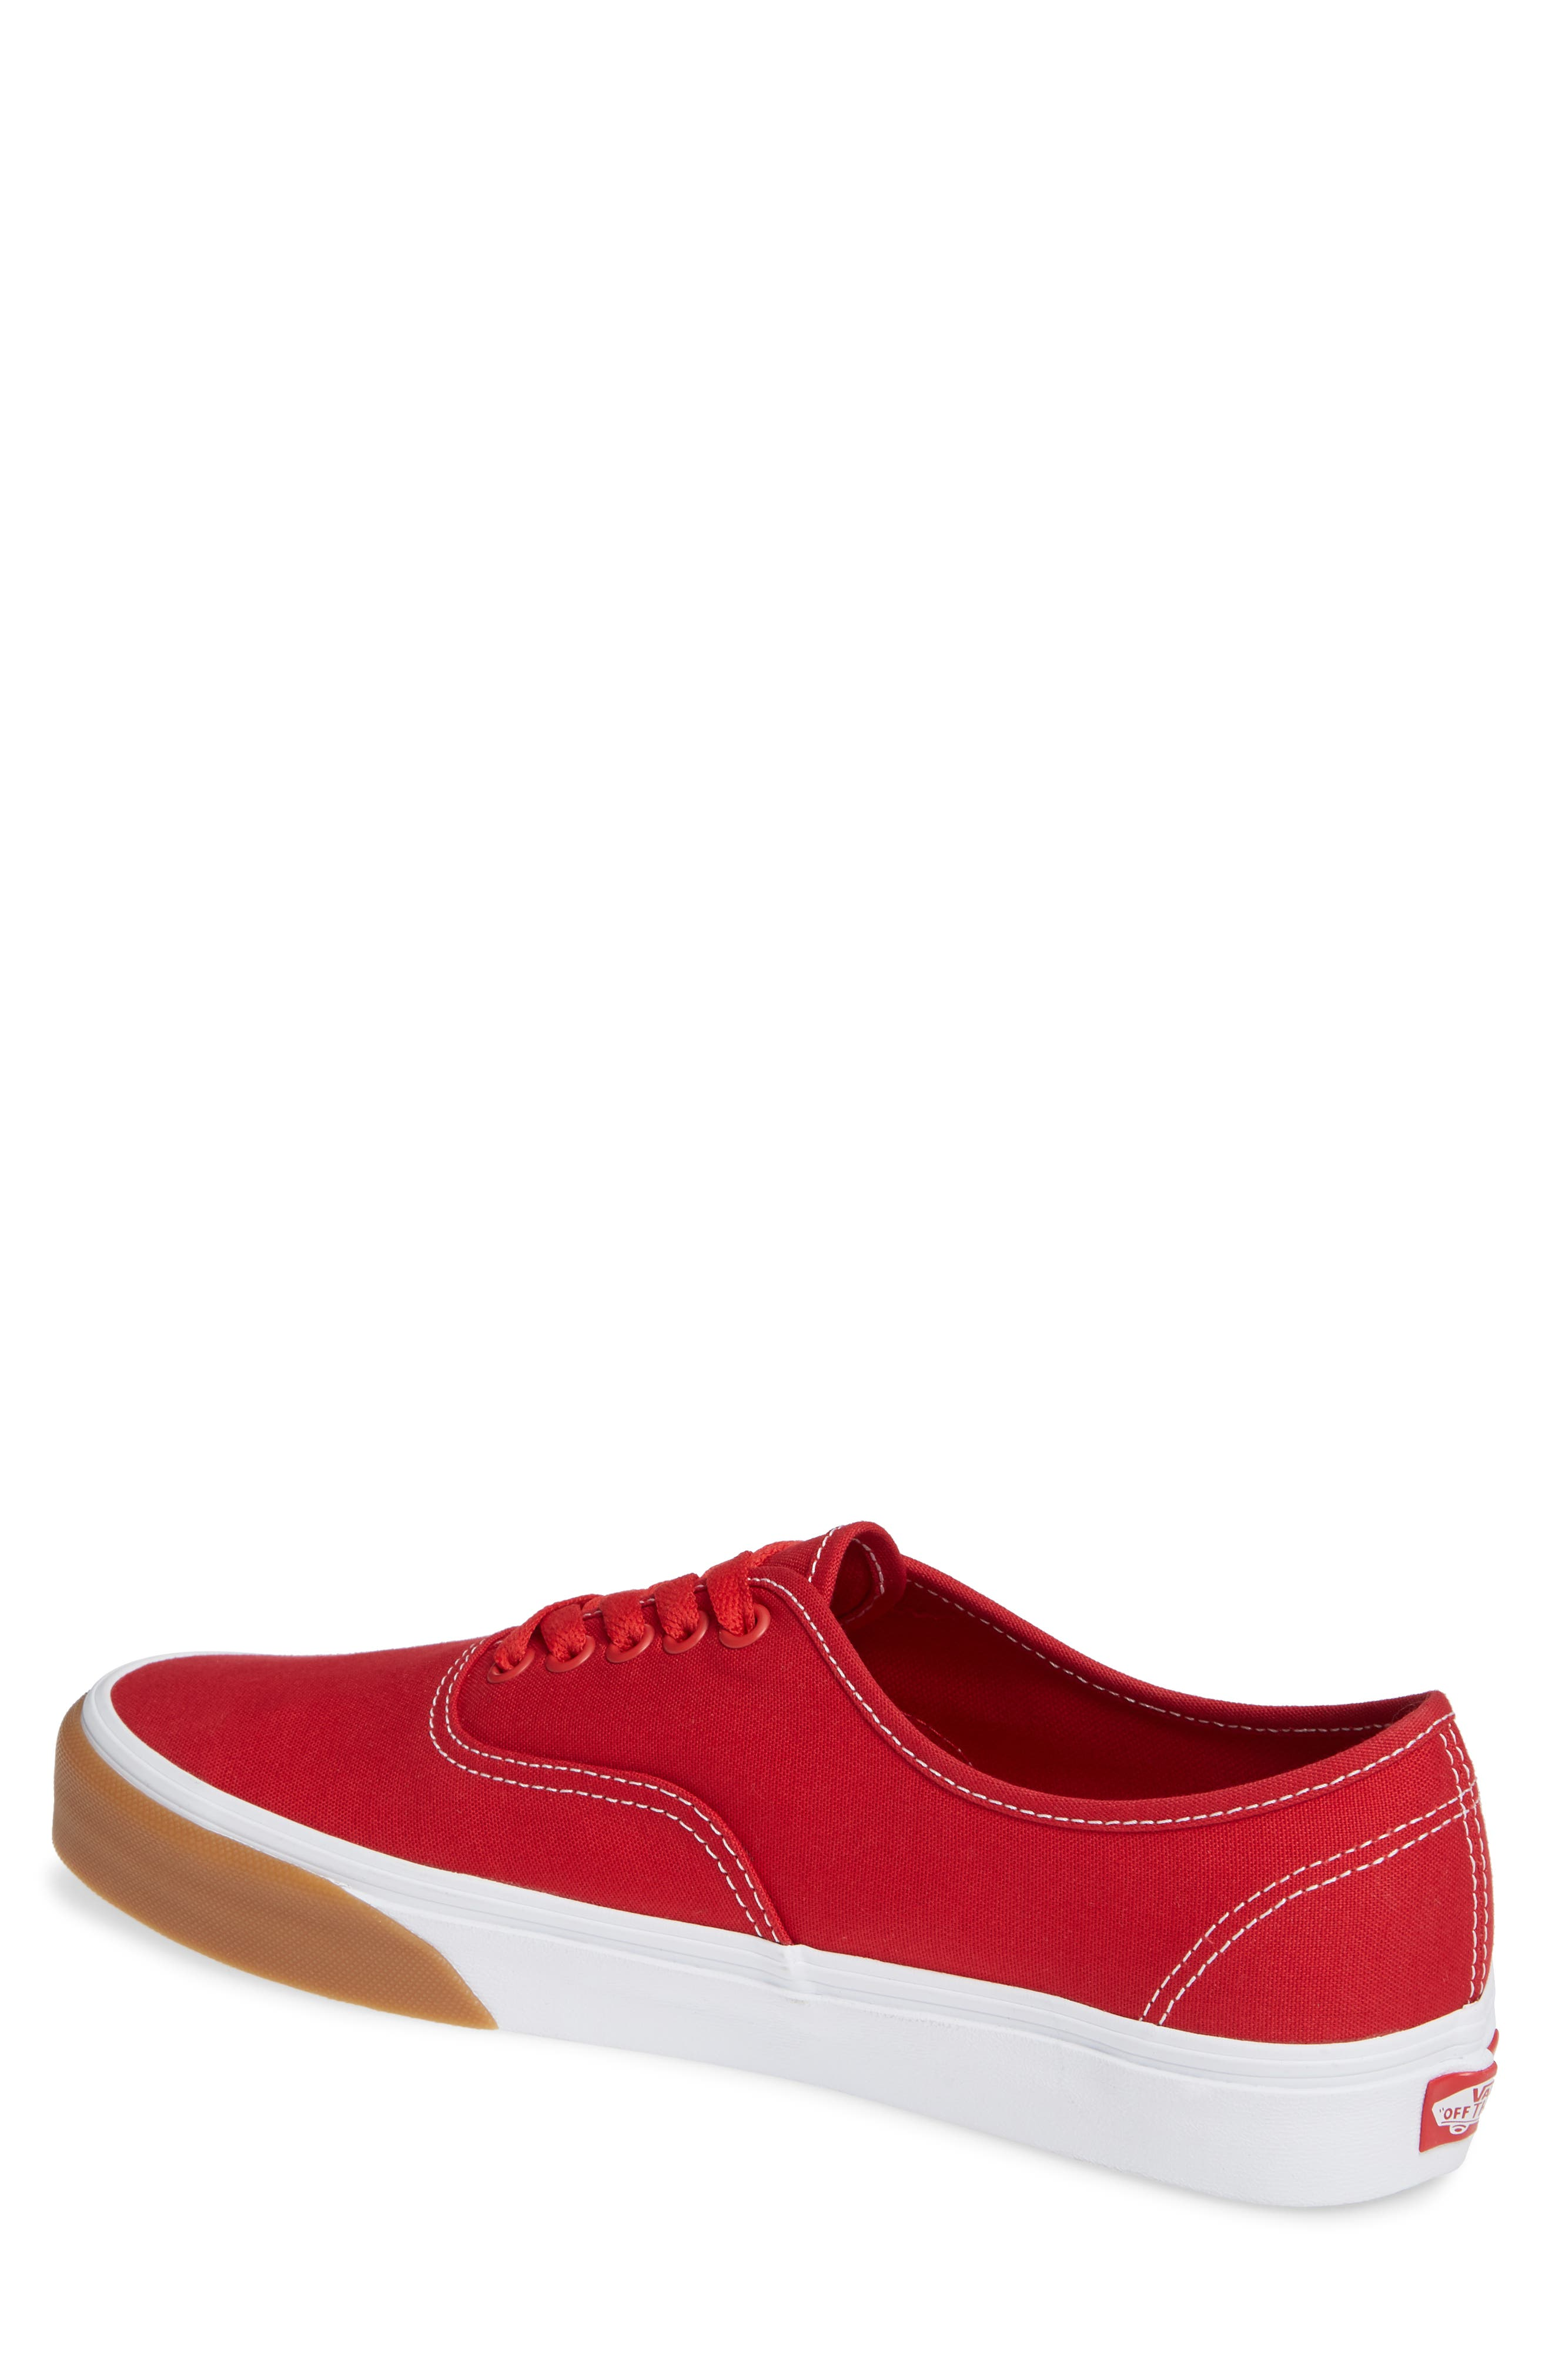 VANS,                             Authentic Gum Bumper Sneaker,                             Alternate thumbnail 2, color,                             RED/ TRUE WHITE